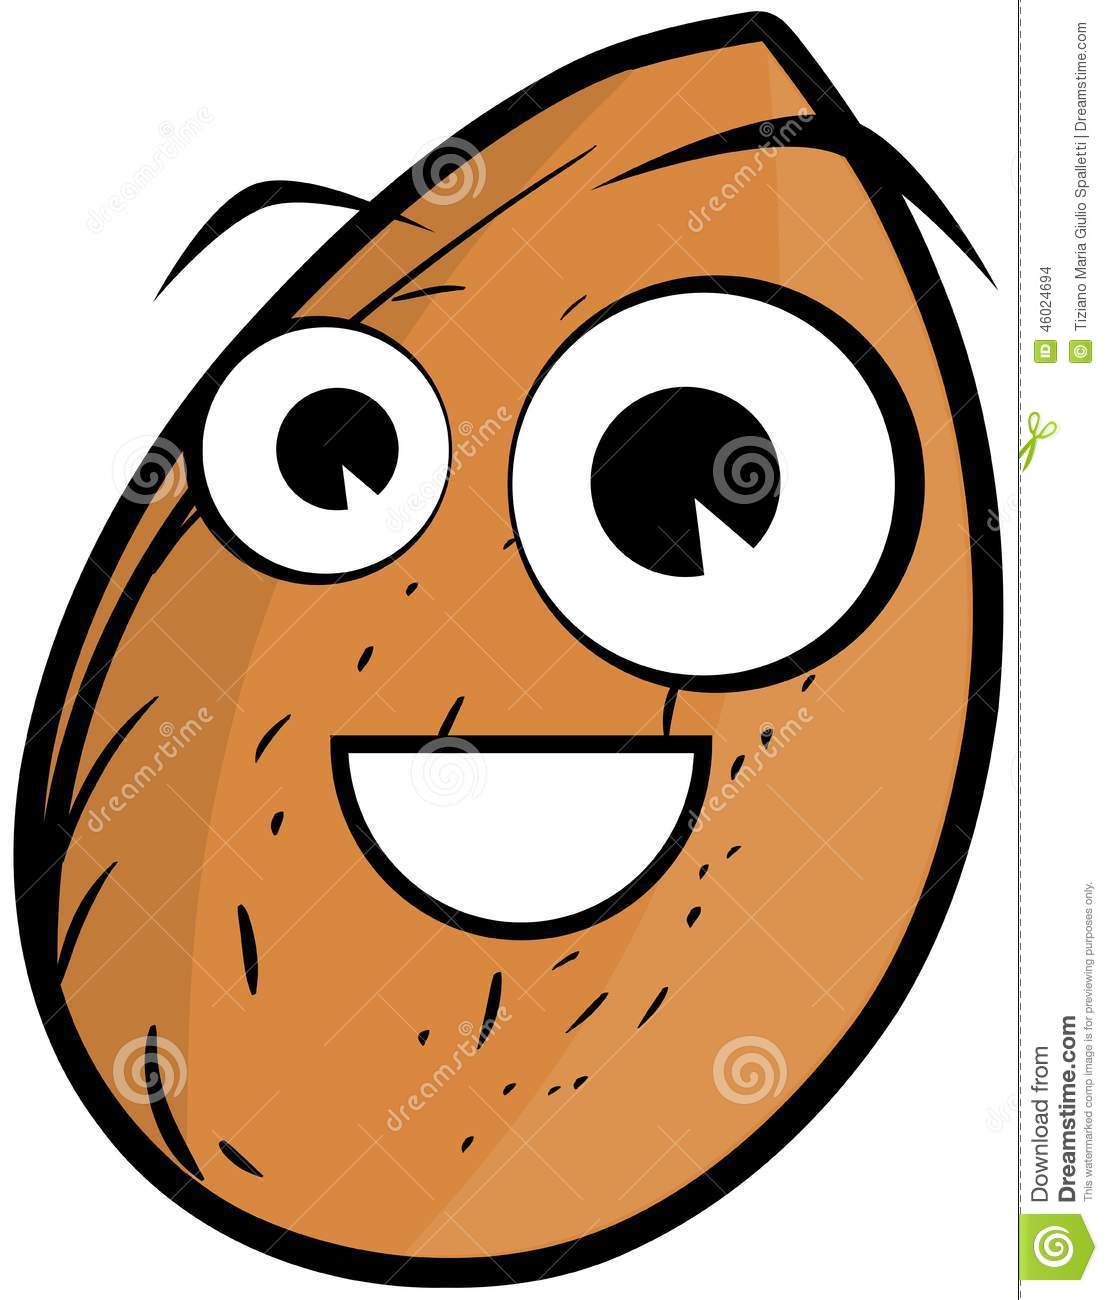 Image representing a stylized almond a nice idea that can be used in